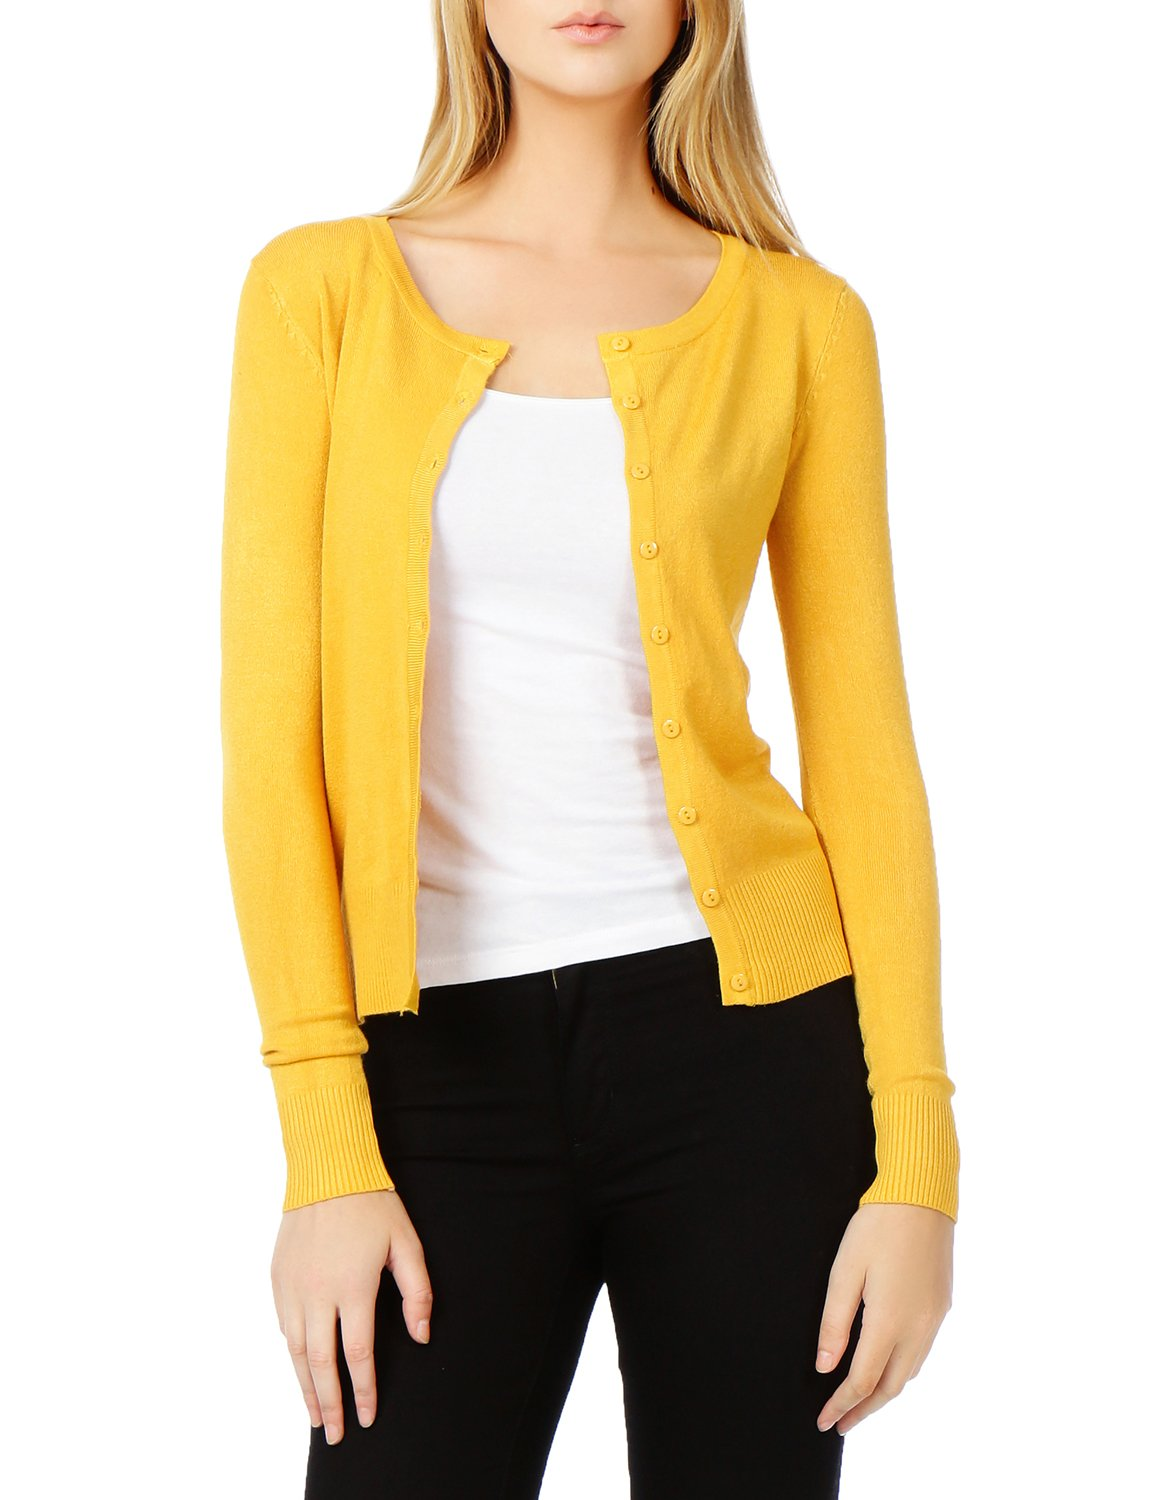 LE3NO Womens Lightweight Round Neck Fine Knit Cardigan Sweater With Stretch by LE3NO (Image #6)